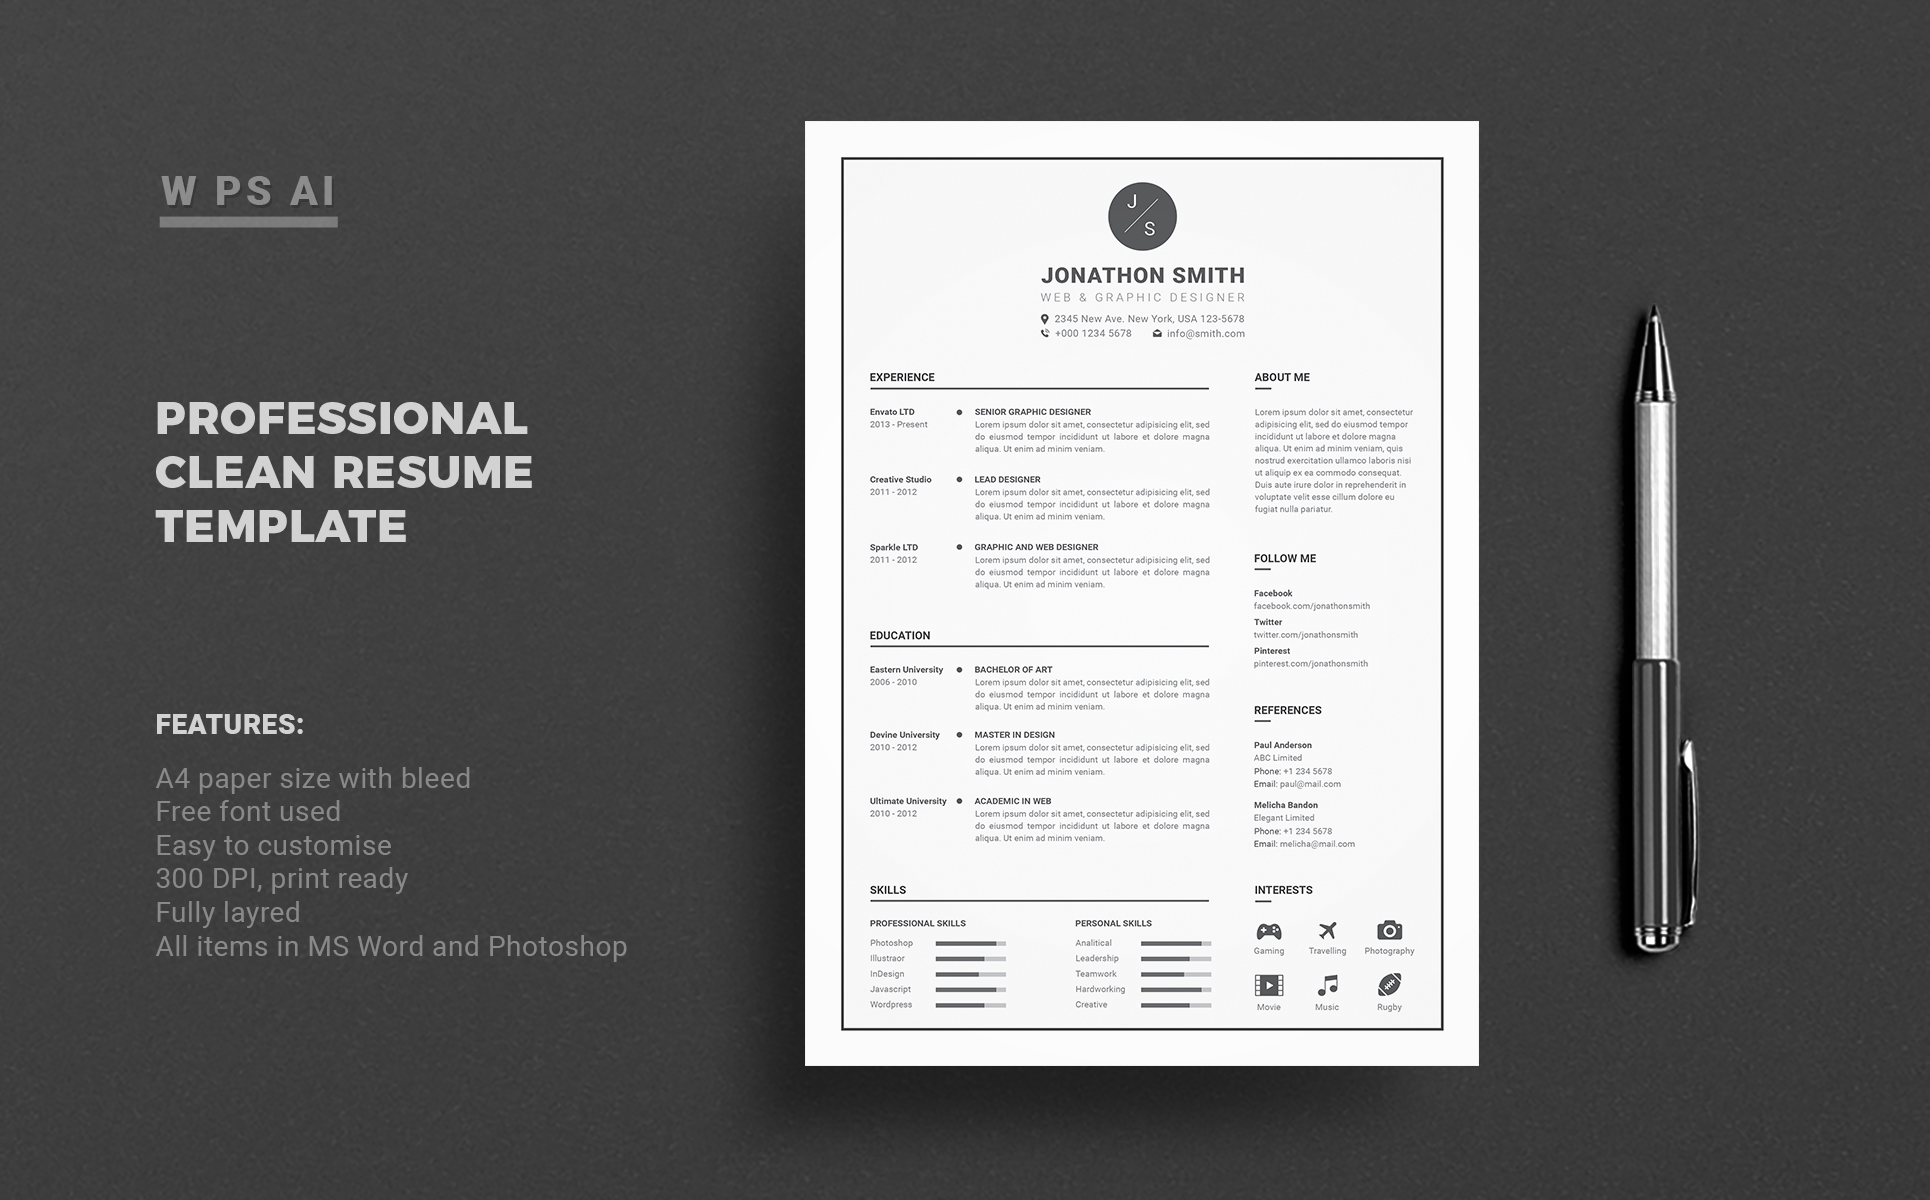 Resume John Smith Resume Template 65425